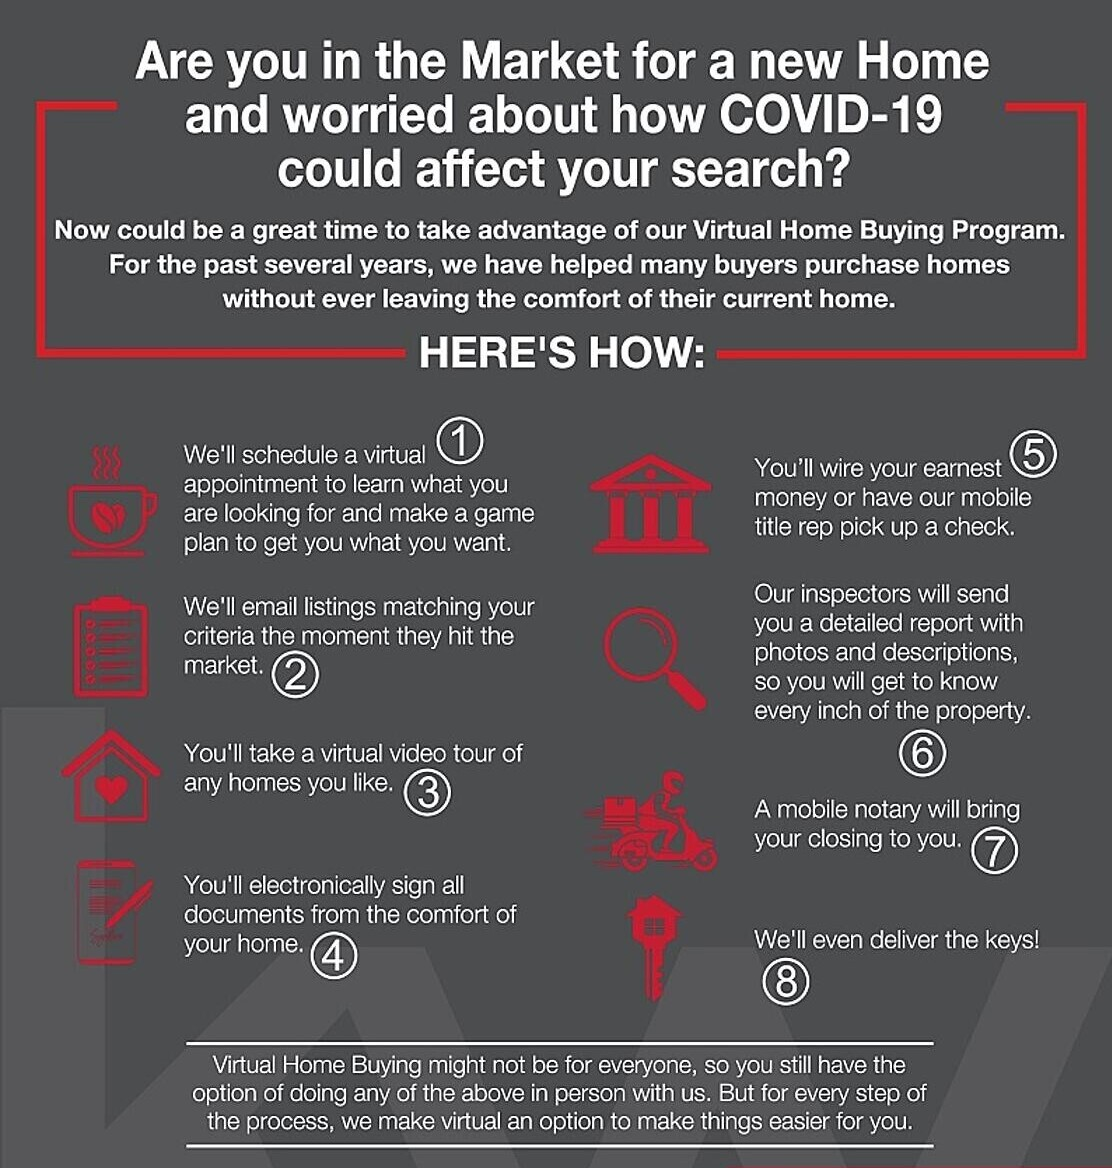 LET'S MAKE BUYING A HOME EASY IN THESE DIFFICULT TIMES